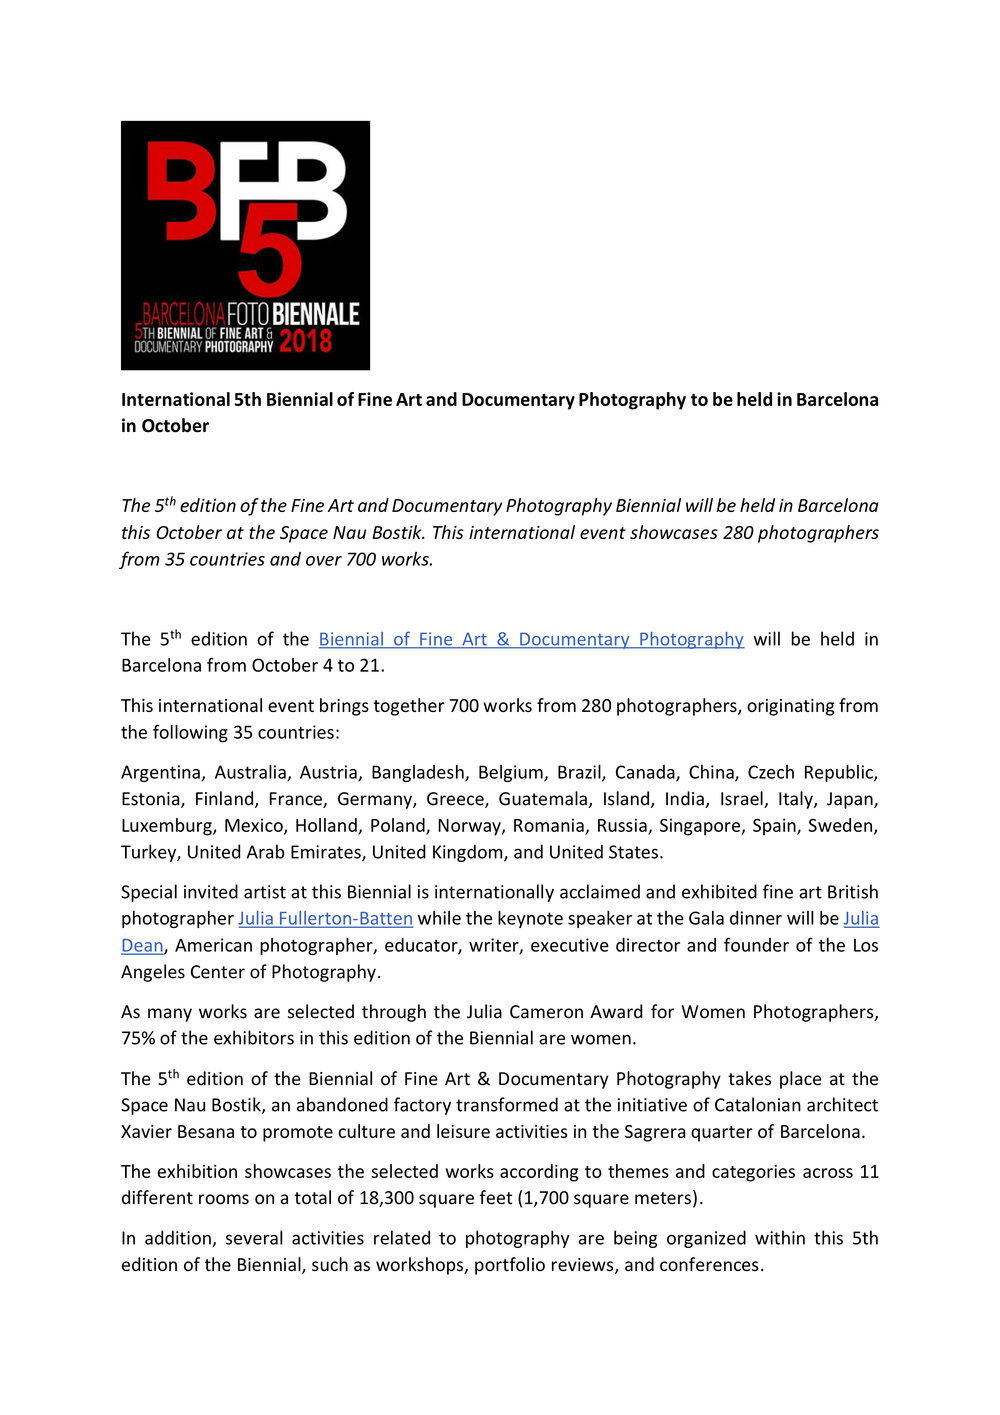 PRESS RELEASE International 5th Biennial of Fine Art and Documentary Photography.jpg